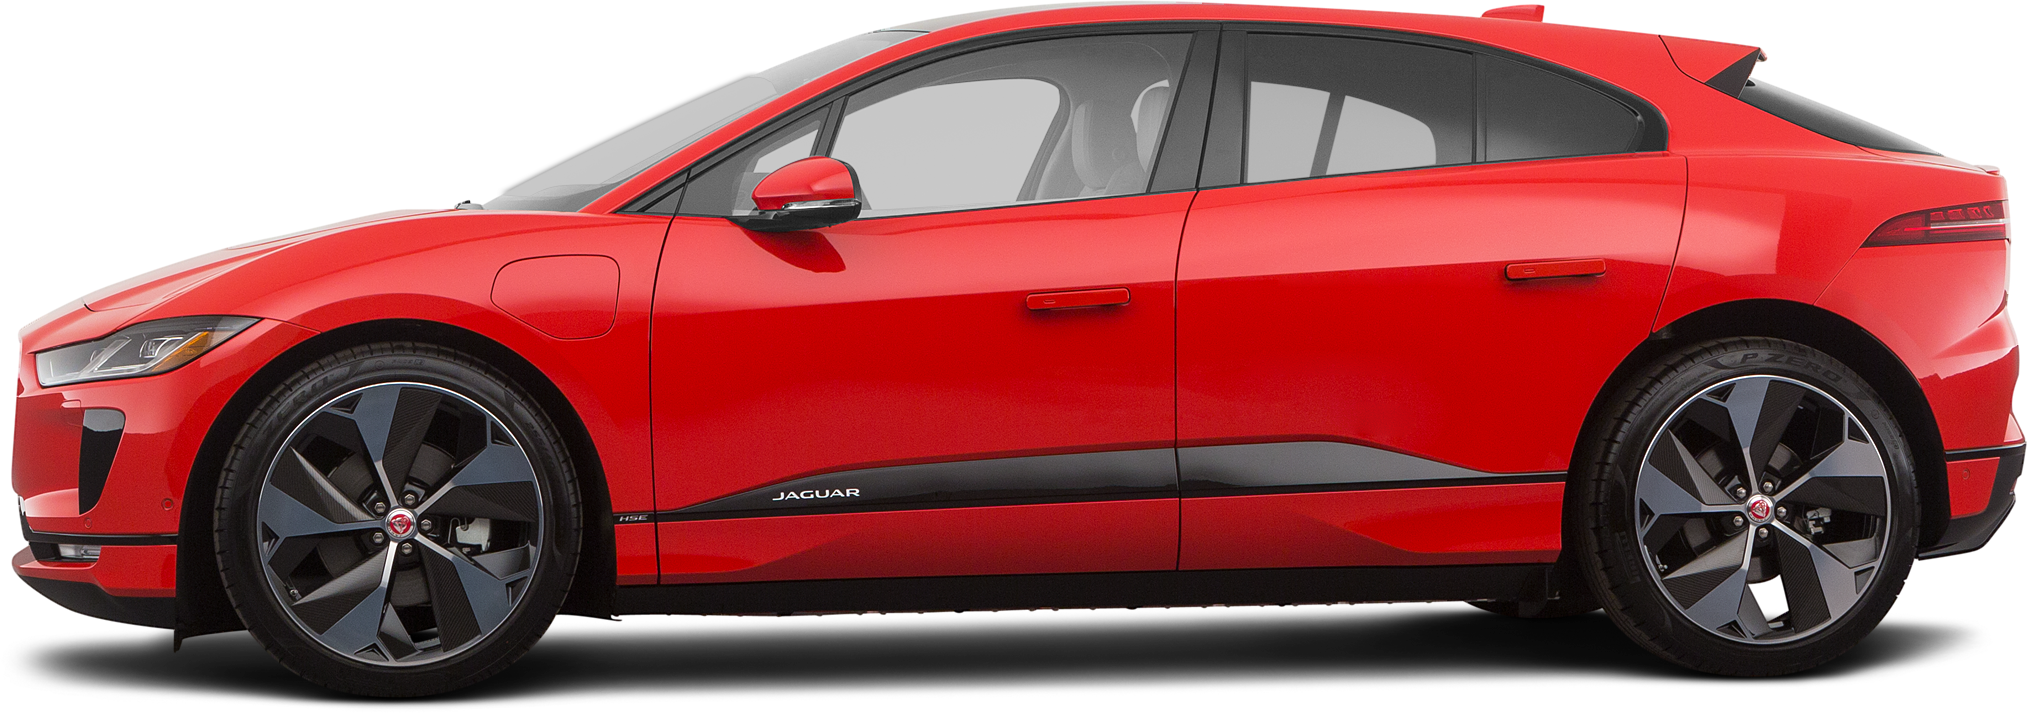 2019 Jaguar I-PACE SUV First Edition